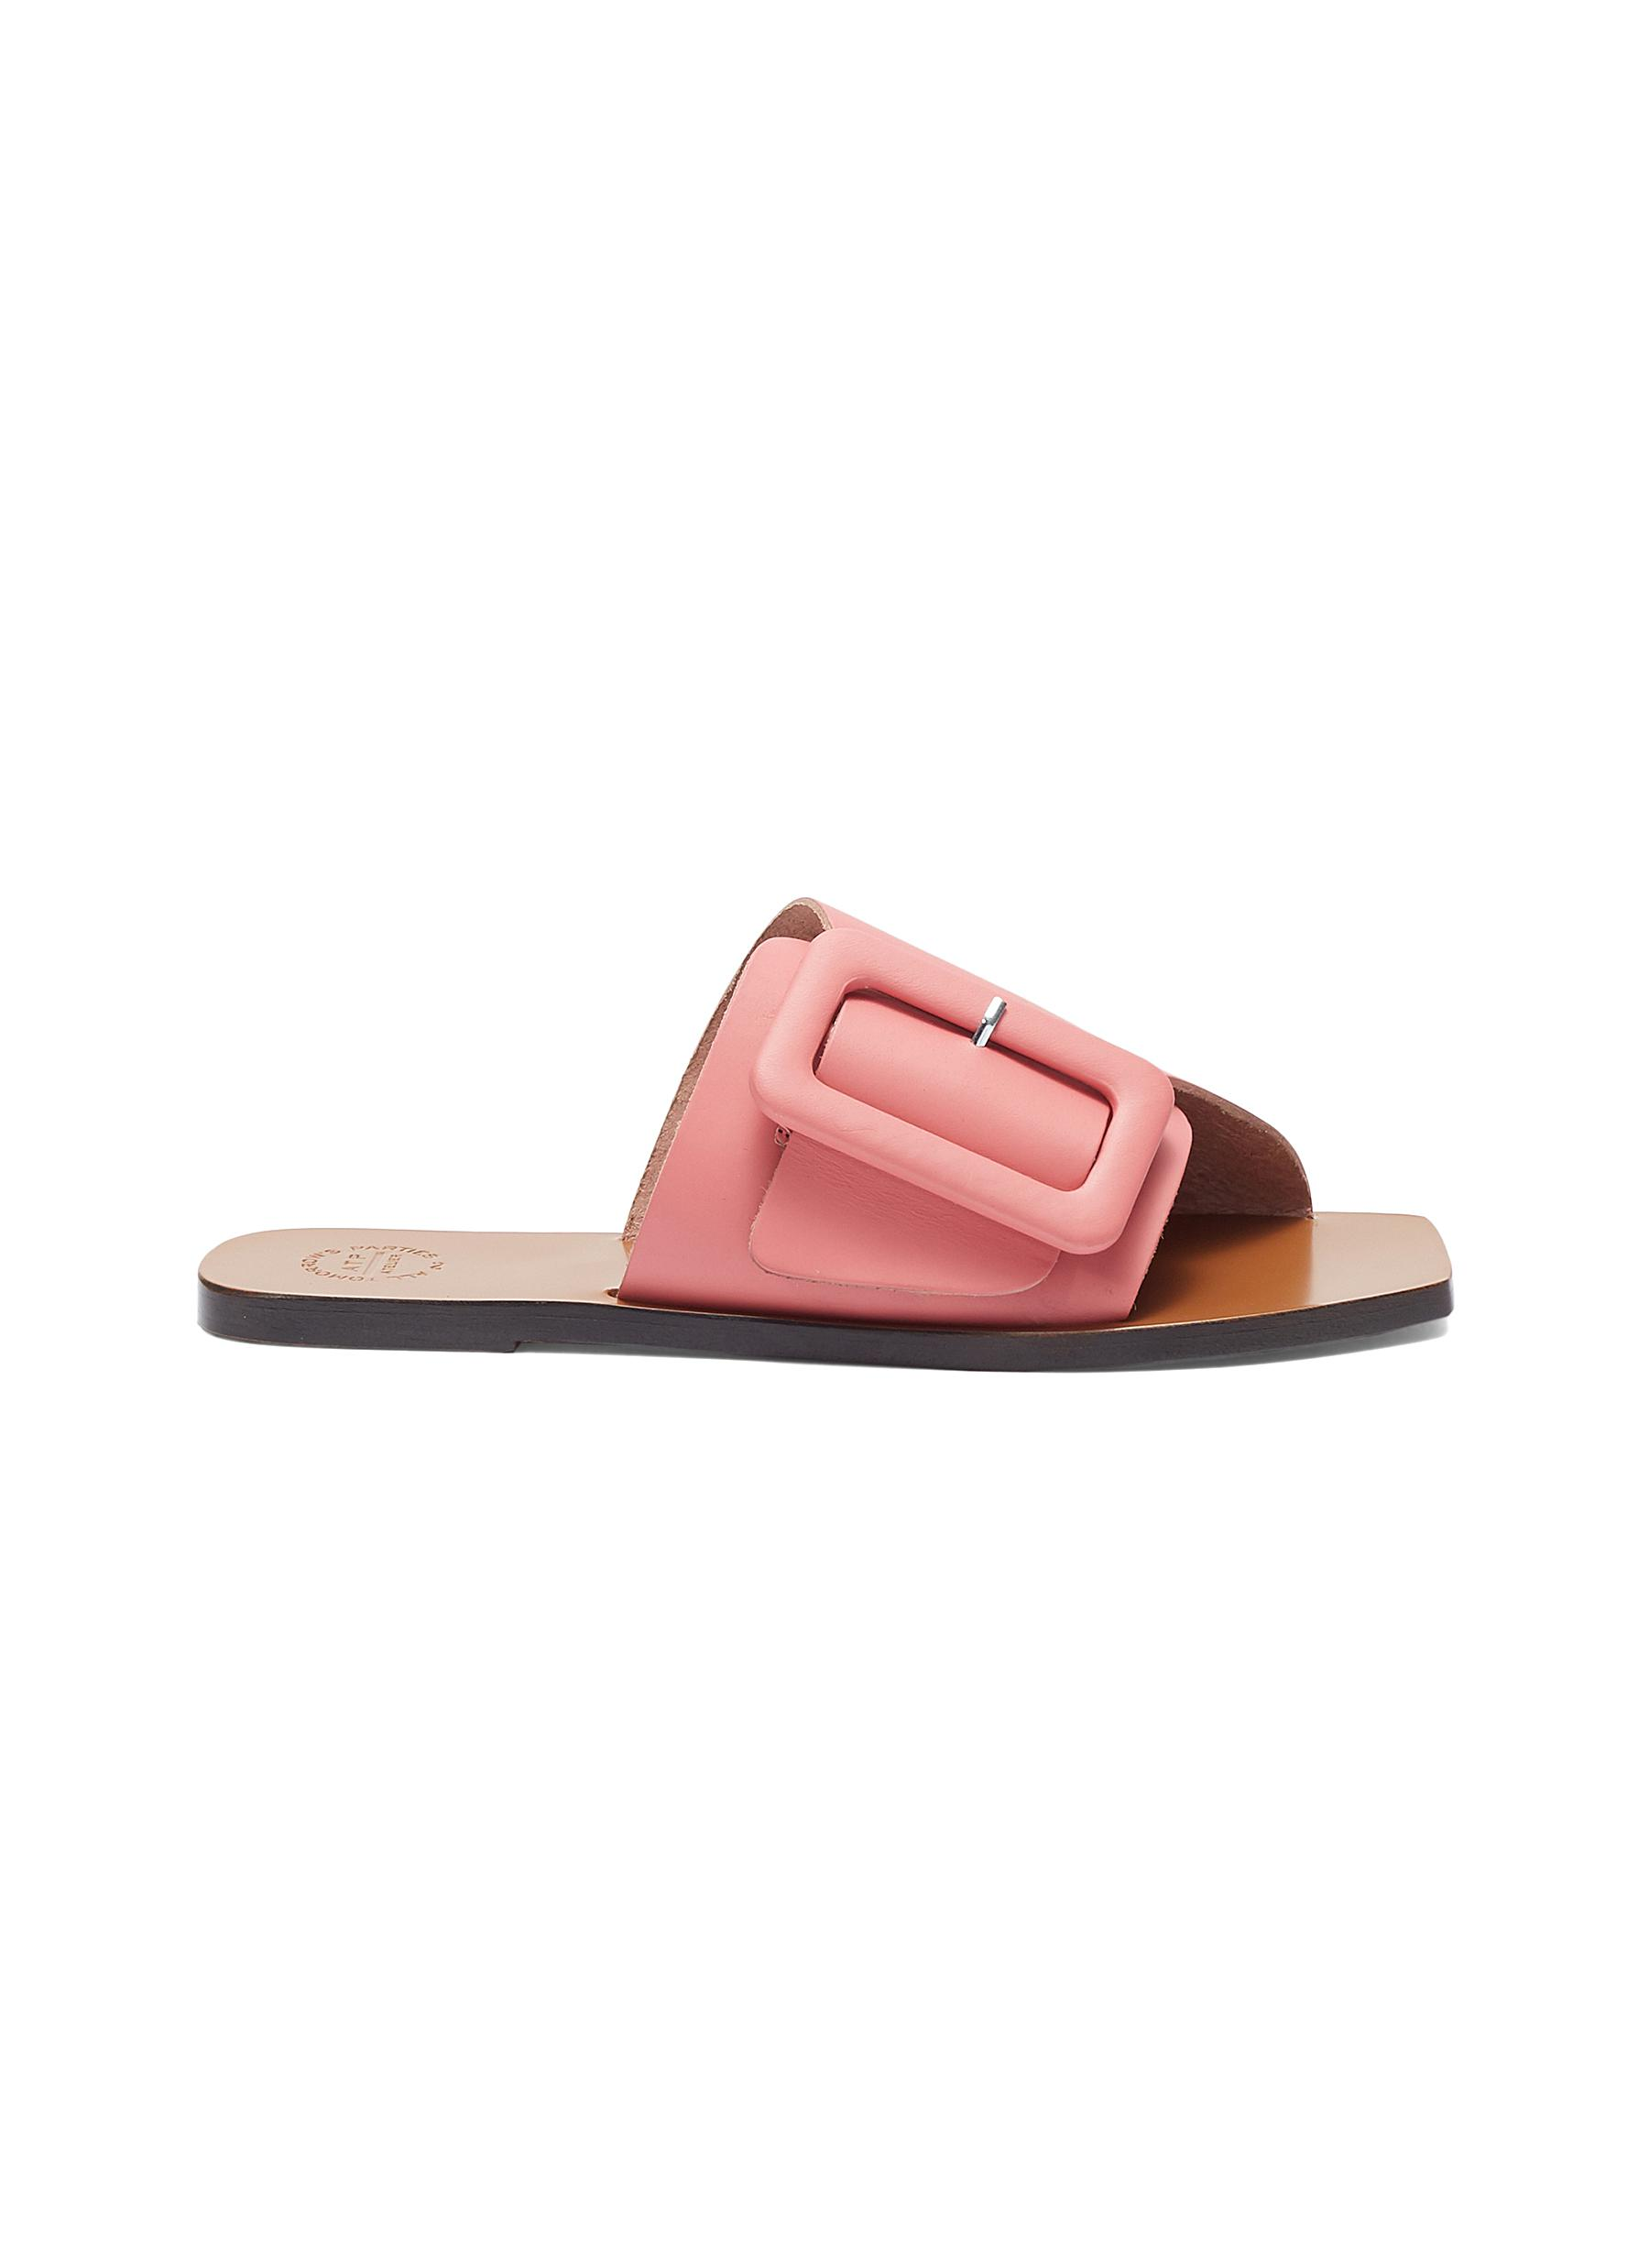 Atp Atelier 'Ceci' Buckled Leather Slide Sandals In Confetti